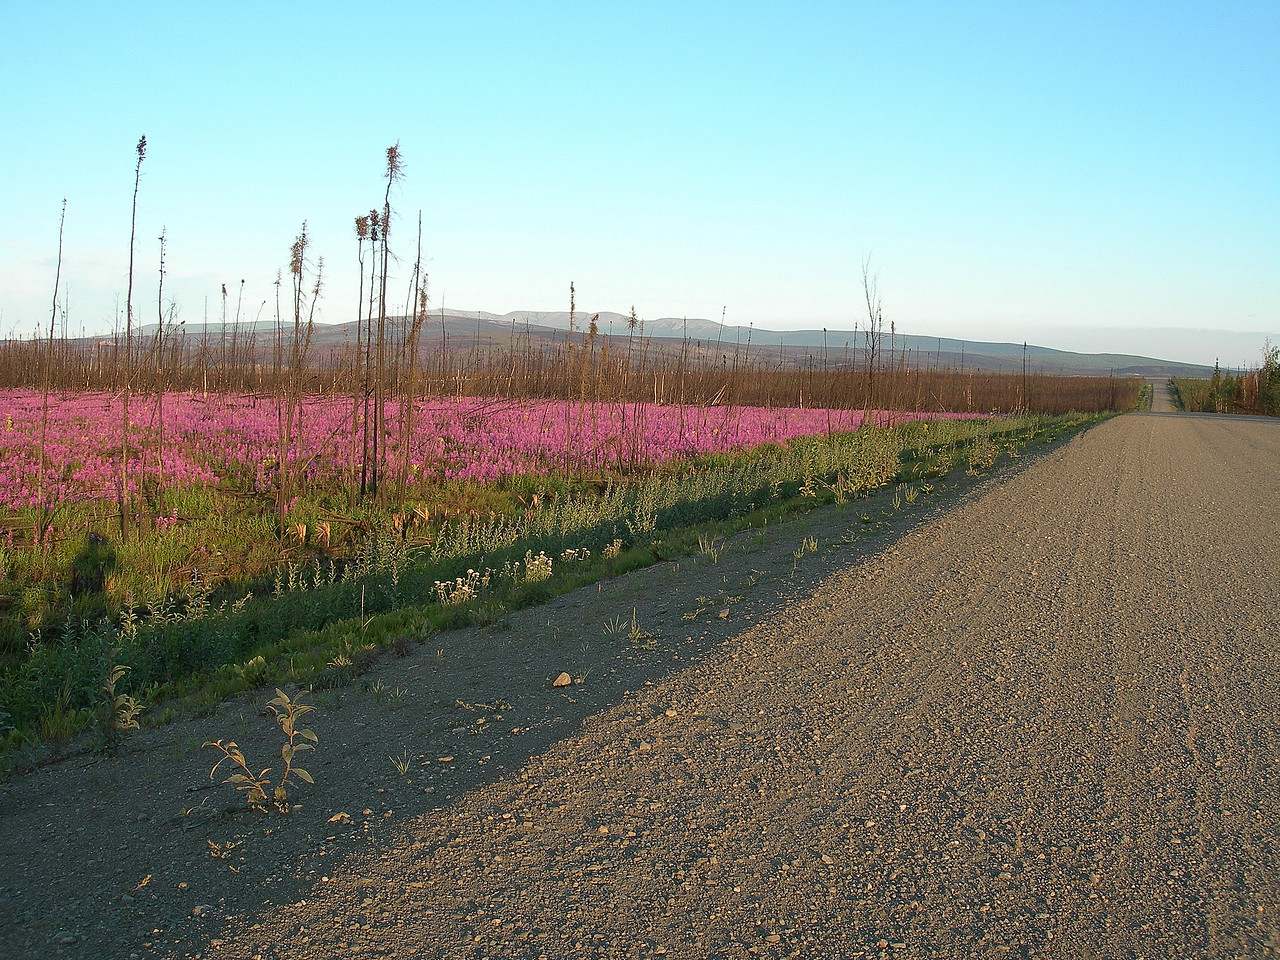 On the Dalton Highway, also called the Haul Road, as it was built for the trucks that haul supplies and equipment to the oilfields in Prudhoe Bay, my destination, and as far north as you can go, almost 500 miles north of here. The flower is called fireweed. The Alaskans say that once it finishes blooming, winter is 6 weeks away.